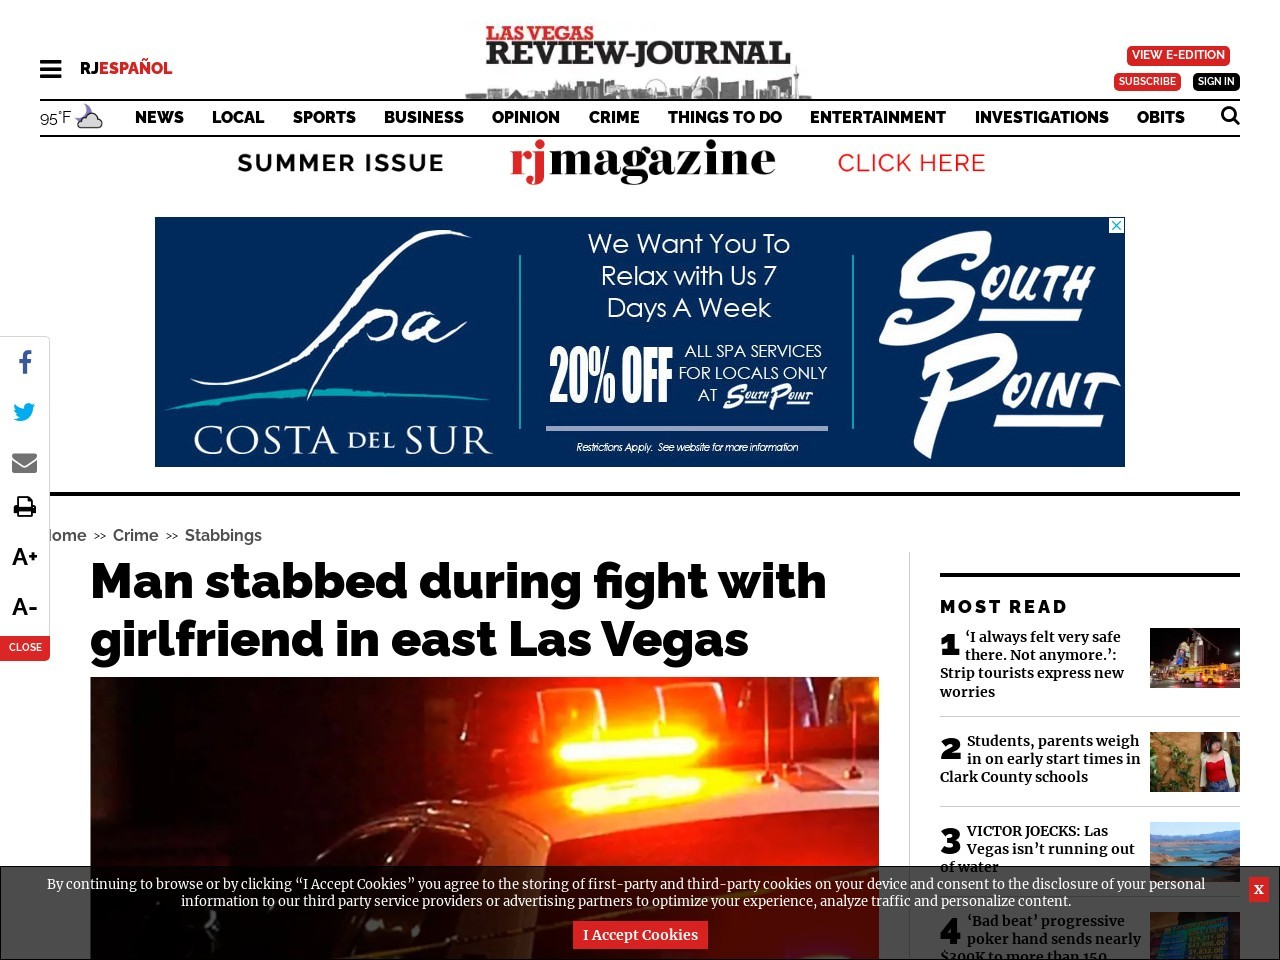 Man stabbed during fight with girlfriend in east Las Vegas